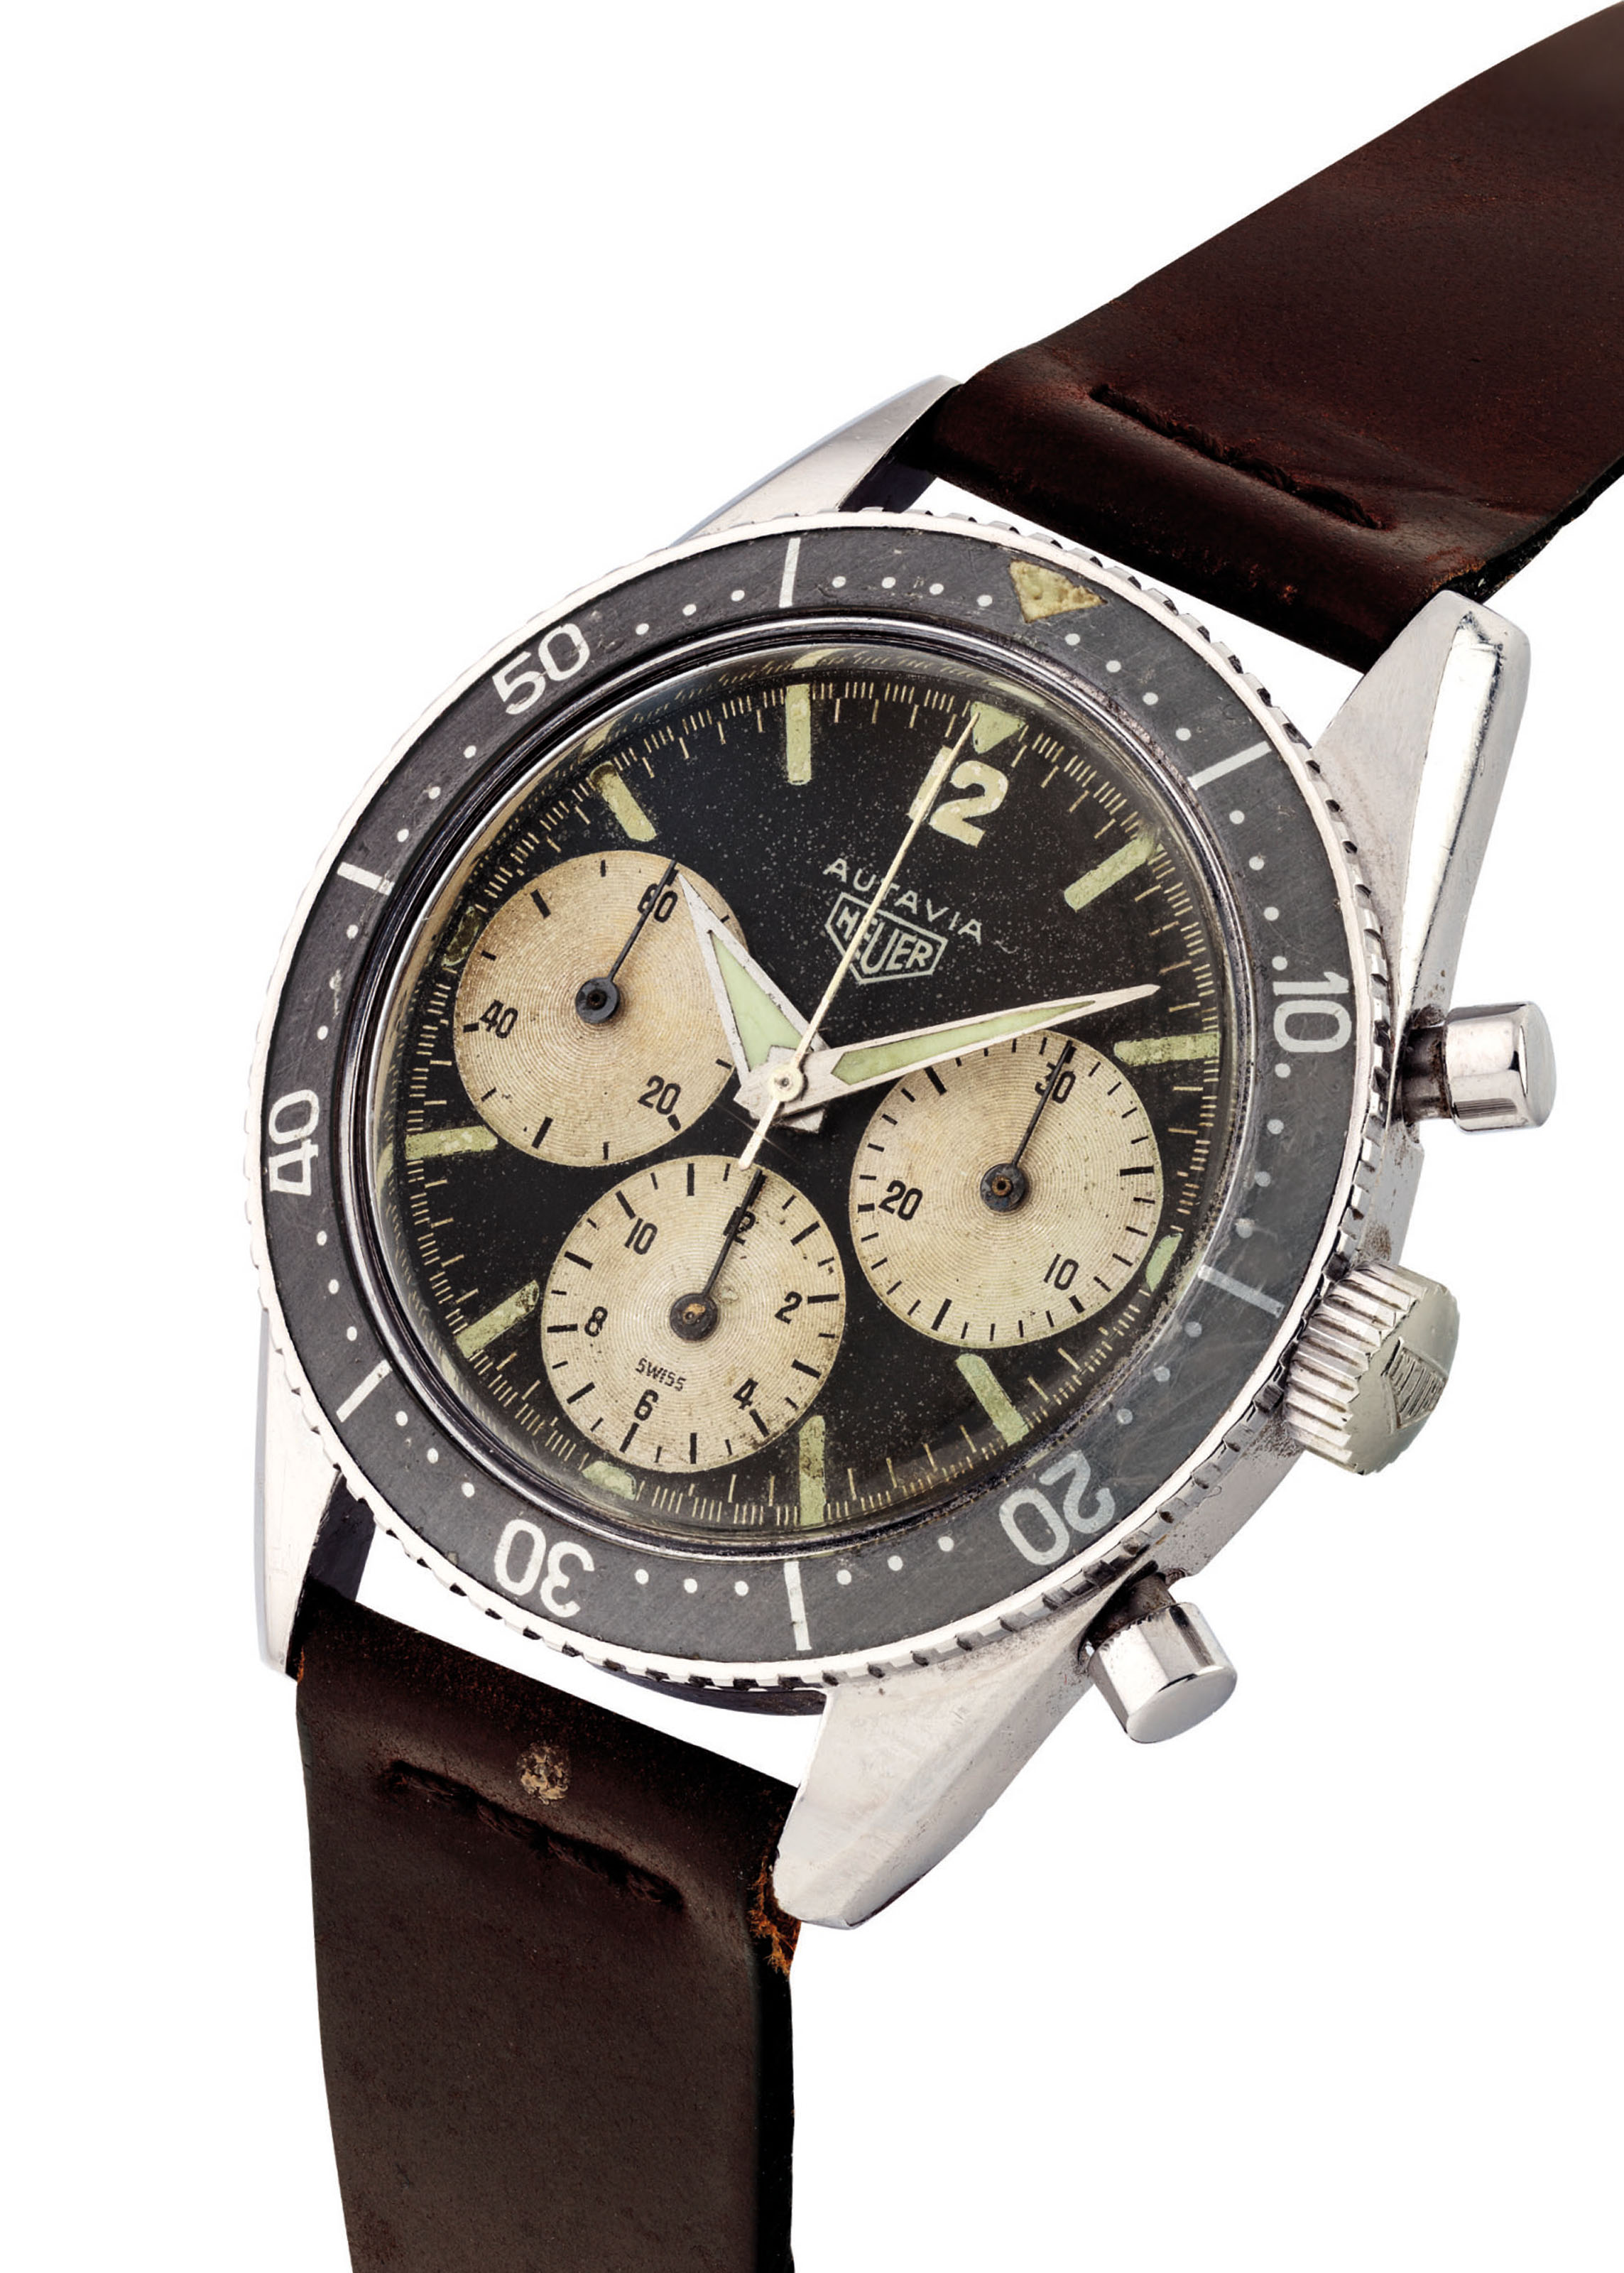 HEUER. AN EXTREMELY RARE STAINLESS STEEL CHRONOGRAPH WRISTWATCH